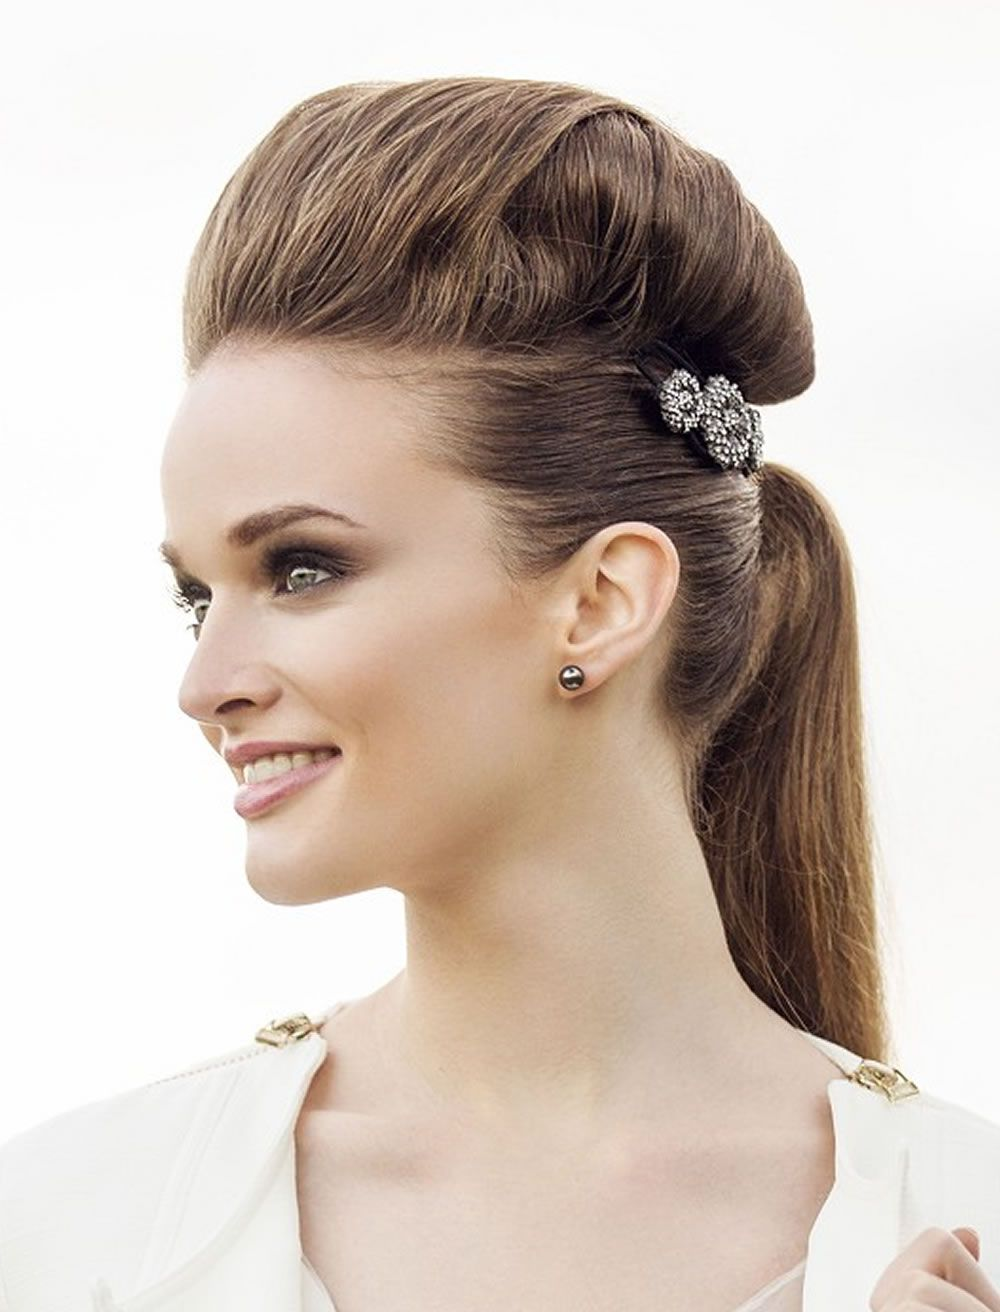 32 beautiful hairstyles for 2018 | women's hairstyles | pinterest | updo